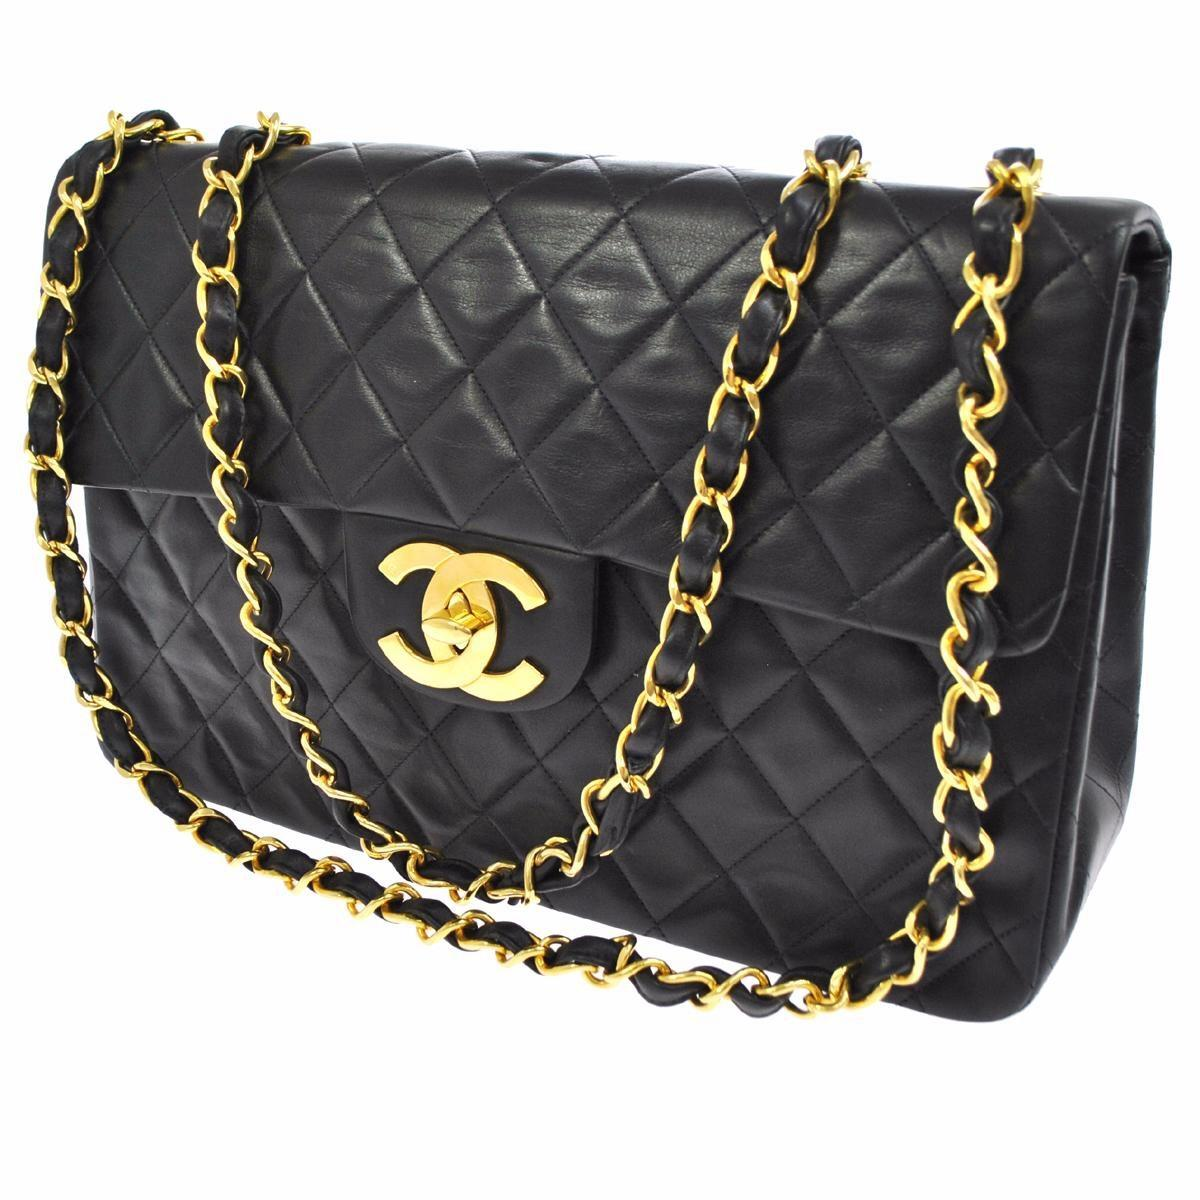 Chanel Jewelry Box Black Lambskin Leather WeekendTravel Bag Tradesy